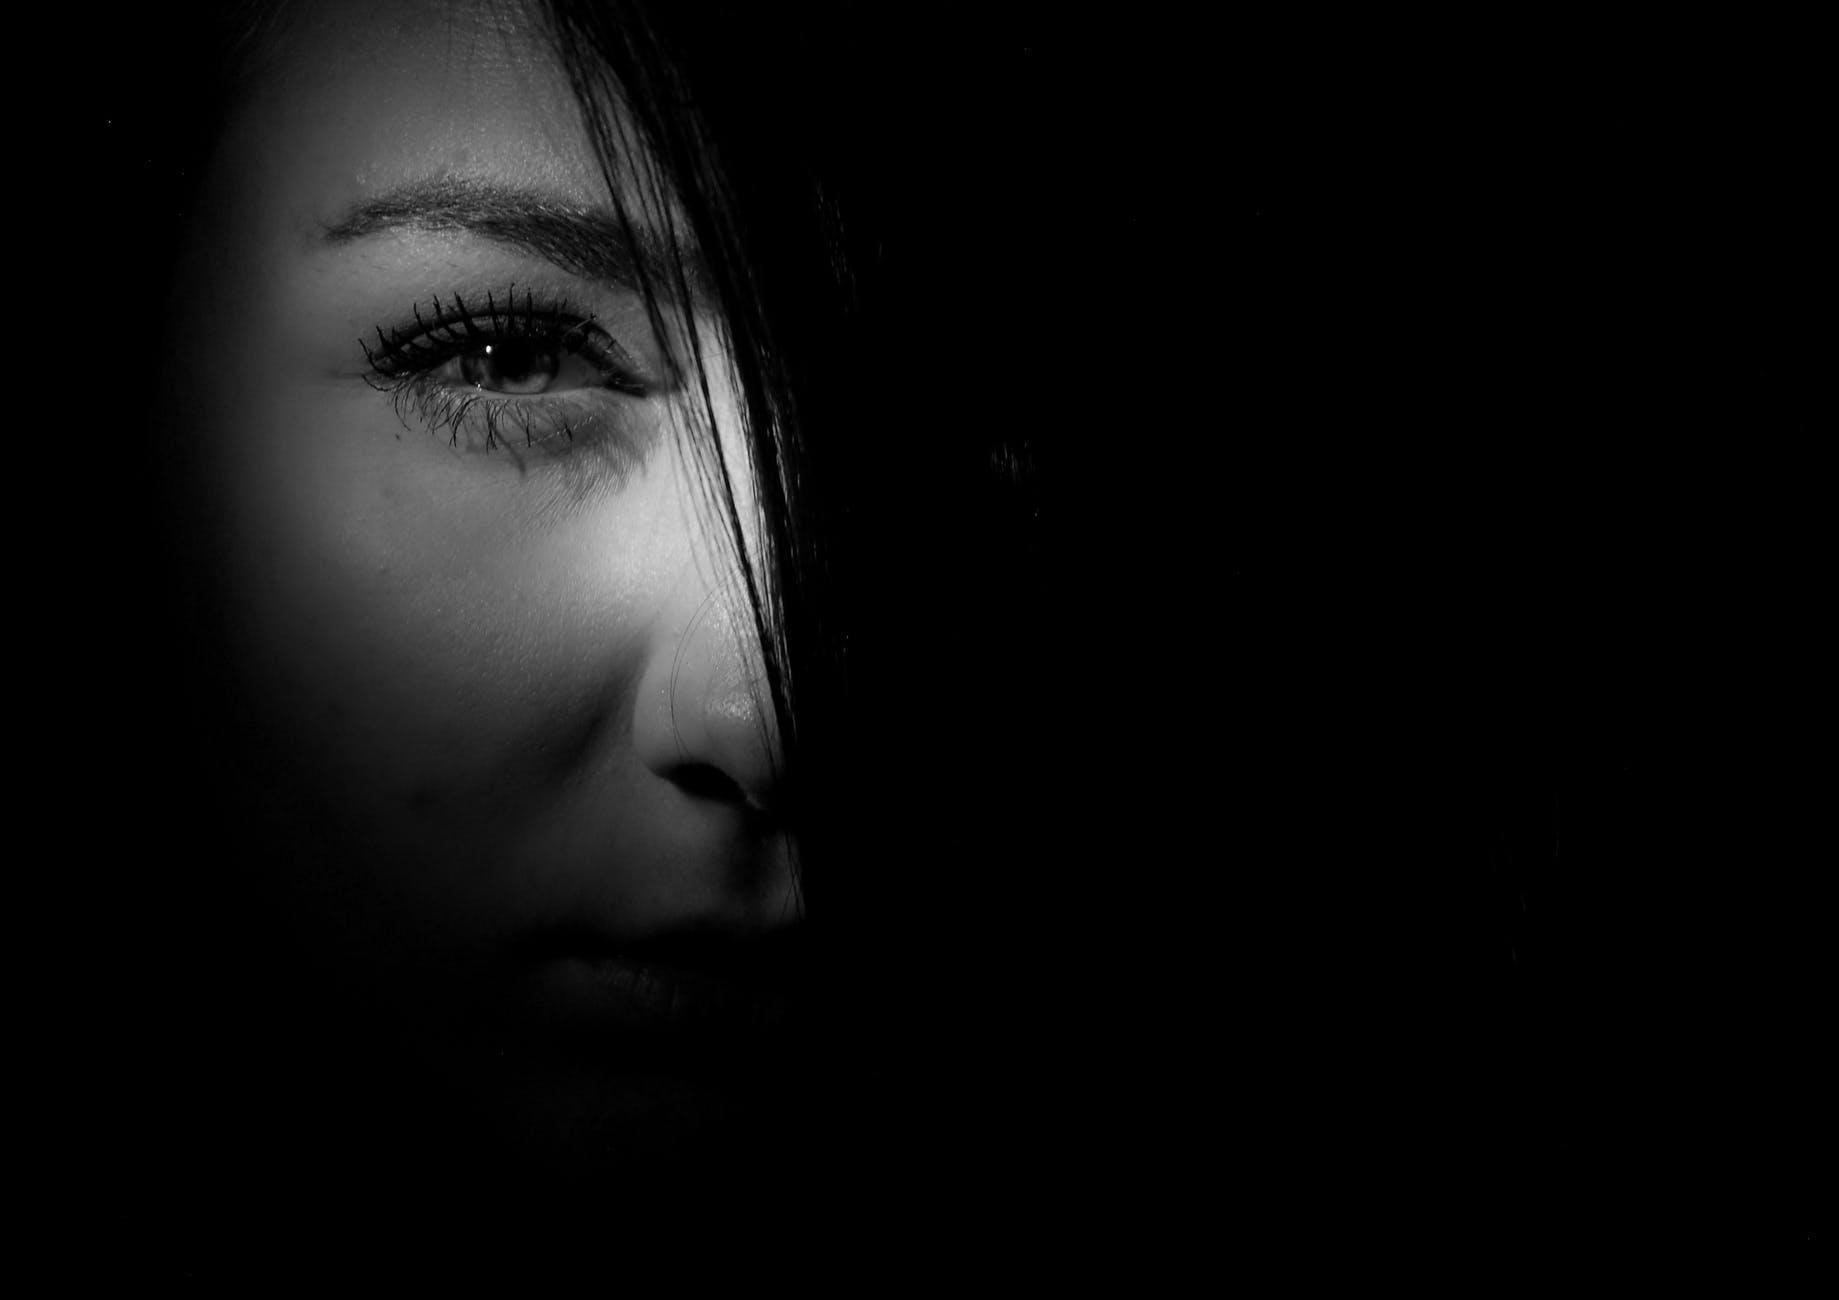 black and white photo of a woman with half her face lit up